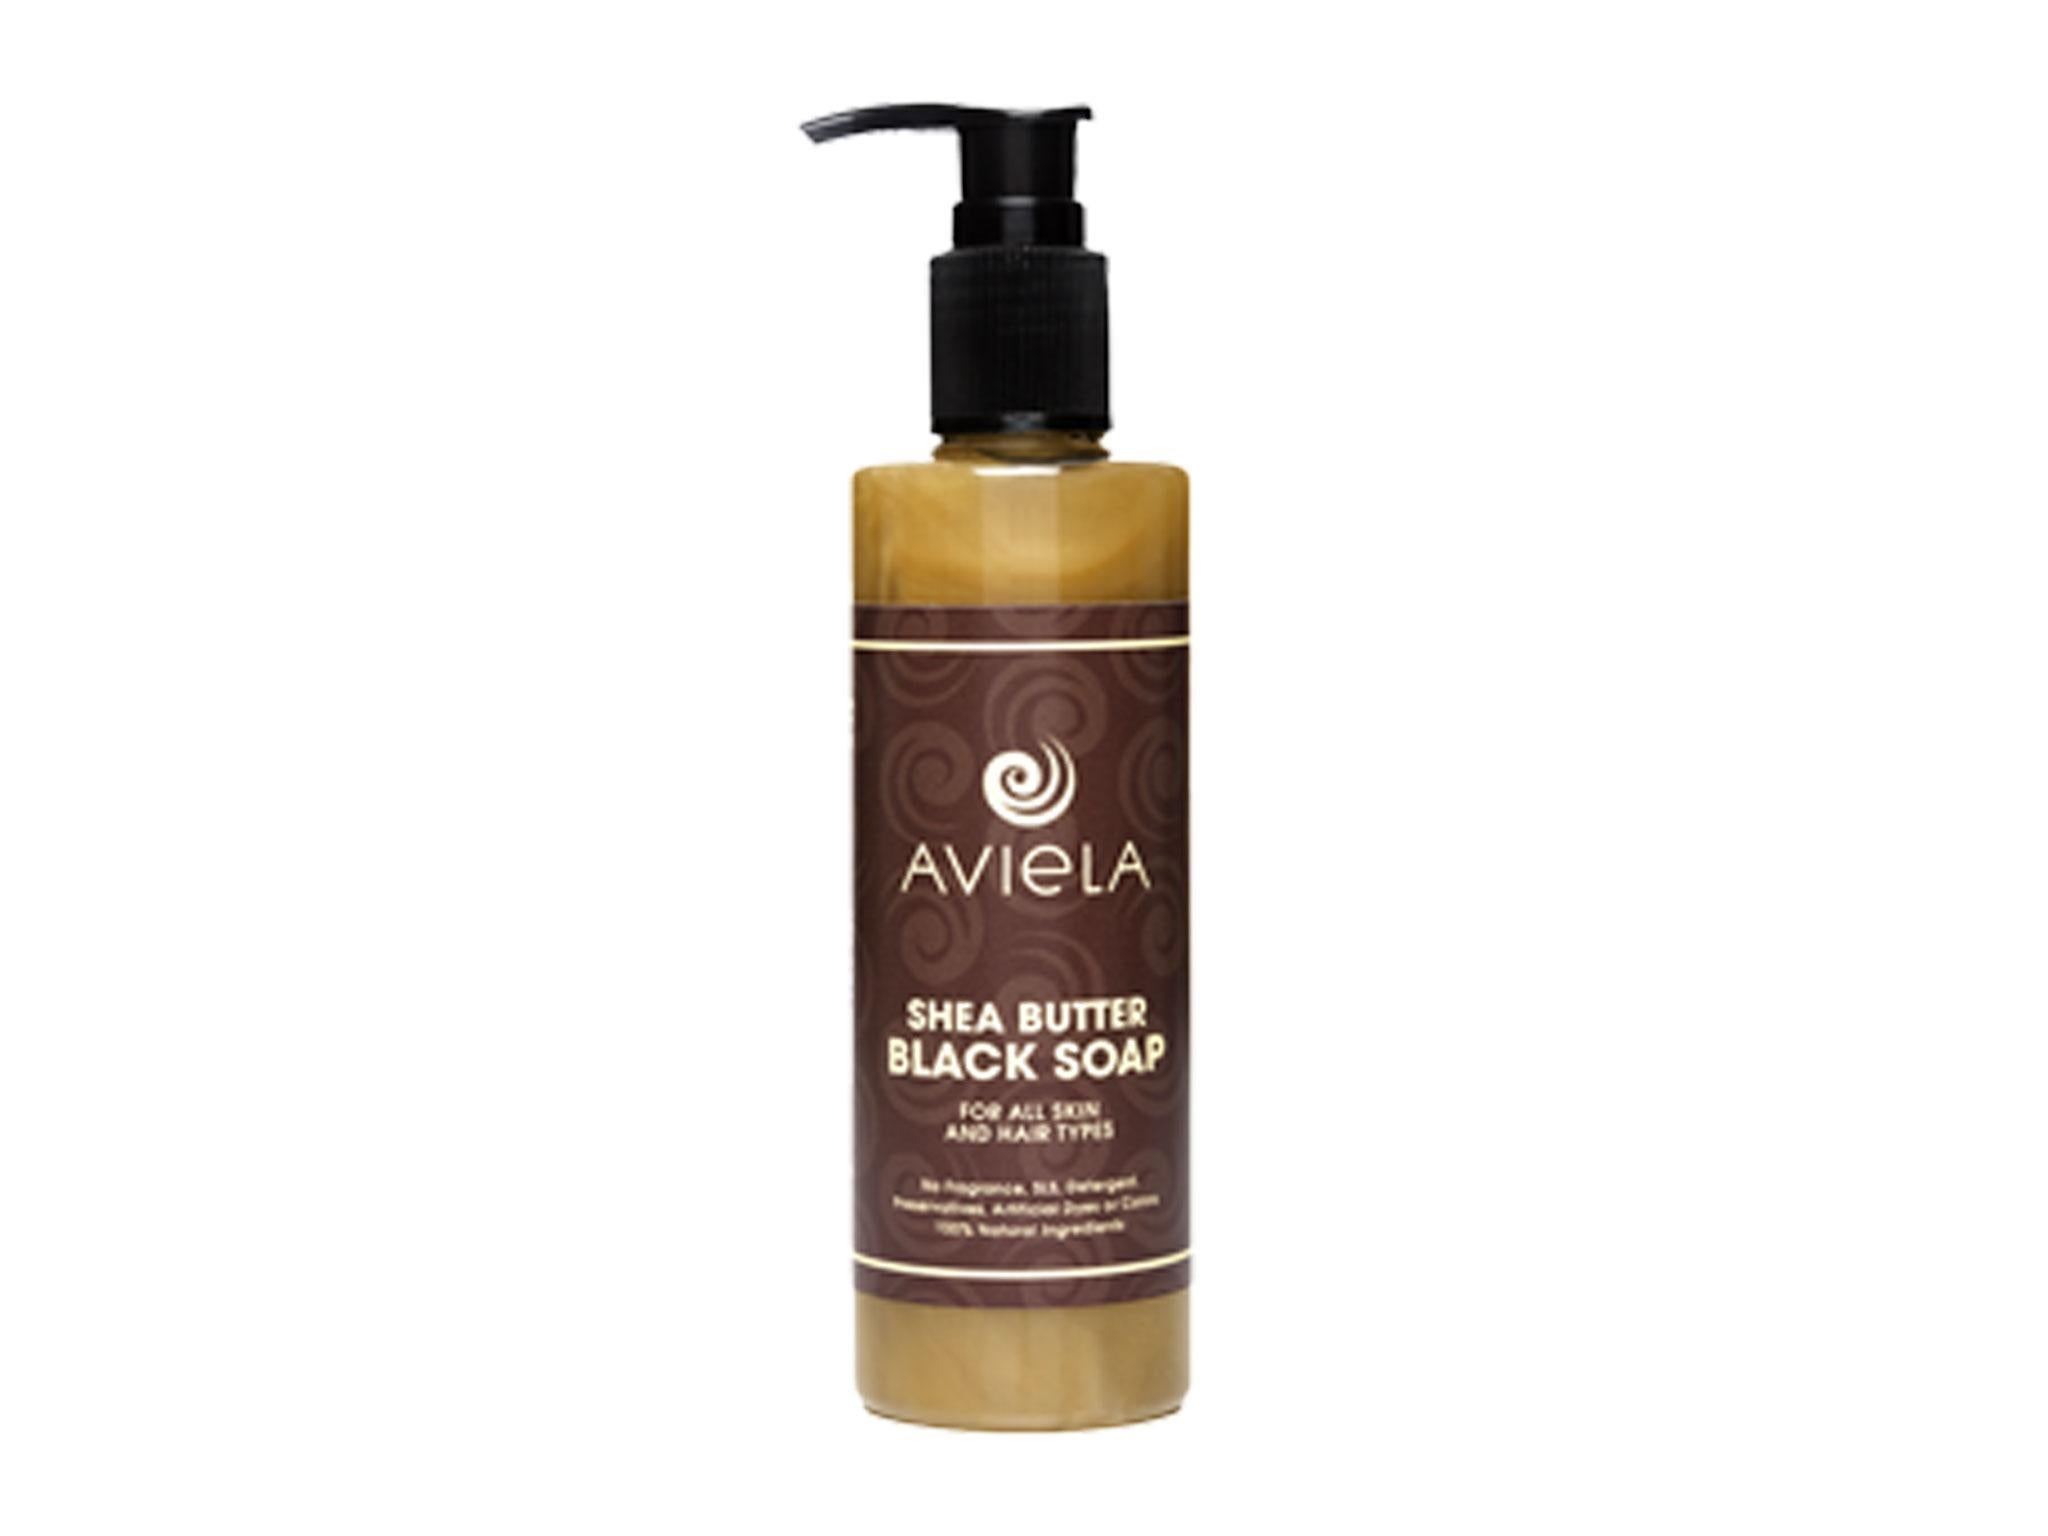 7 Best Body Washes For Sensitive Skin The Independent Cussons Baby Hair Wash Mild Gentle 400ml Avielas Black Soap Is A Rather Distinctive Product As It Not Really Contains High Amount Of Raw Shea Butter And Entirely Free From